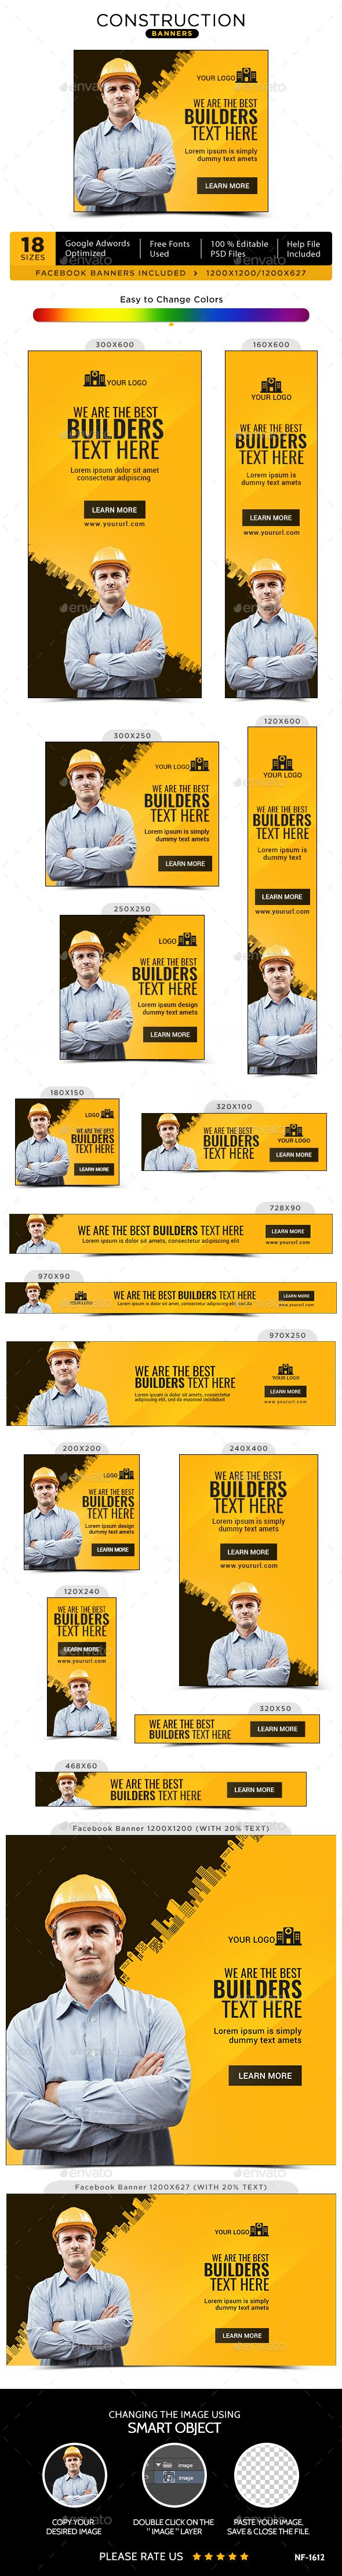 Construction Banners Template PSD